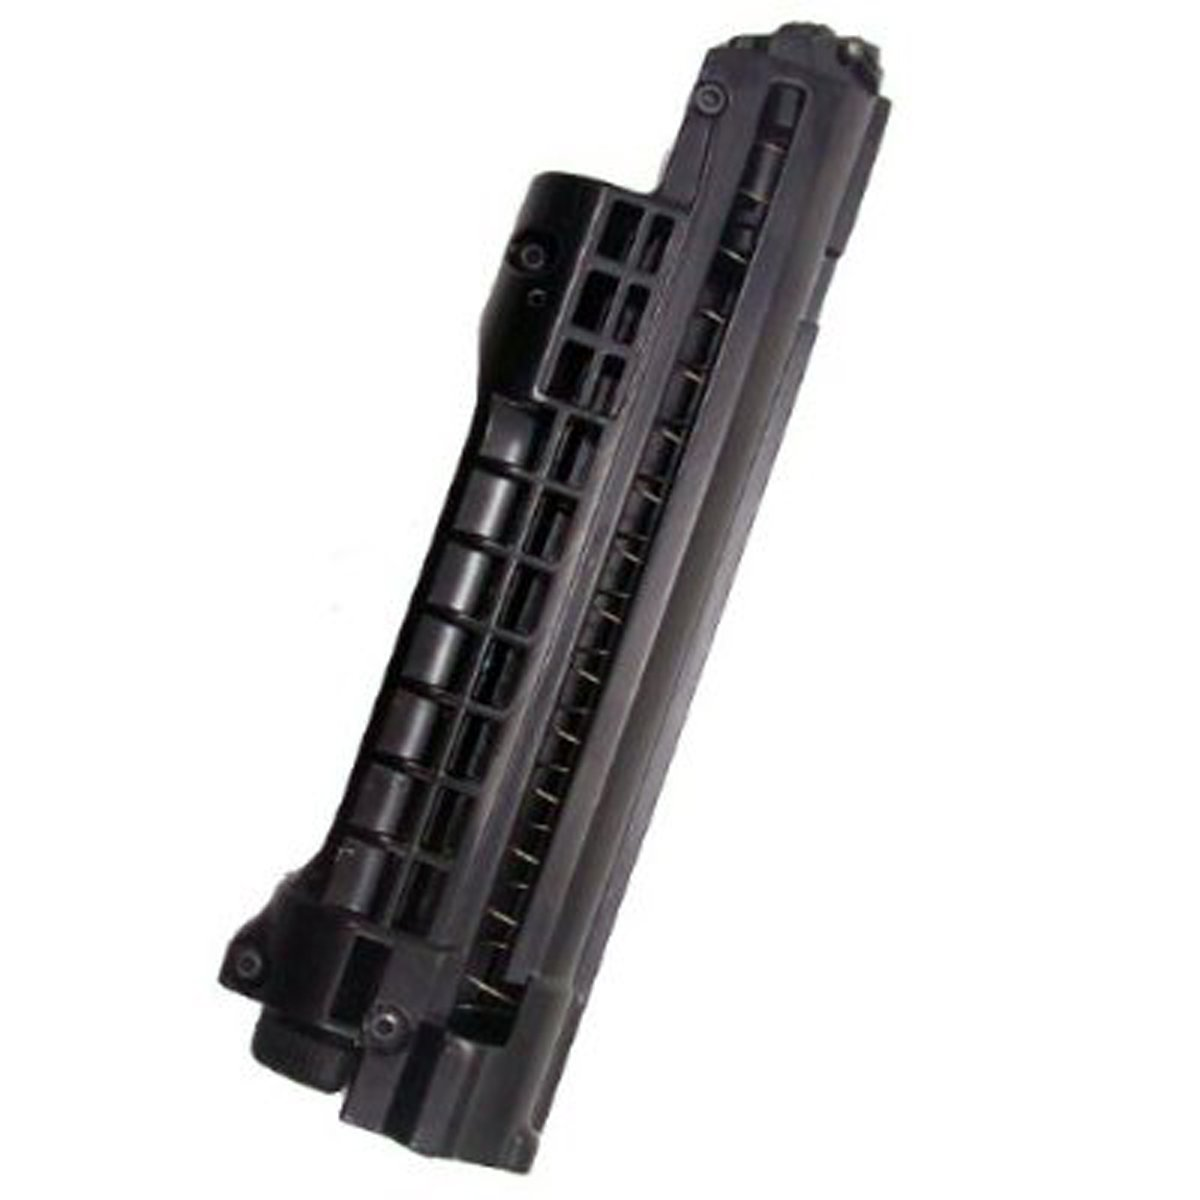 First Strike Tiberius Arms T8.1 Magazine Clip by First Strike